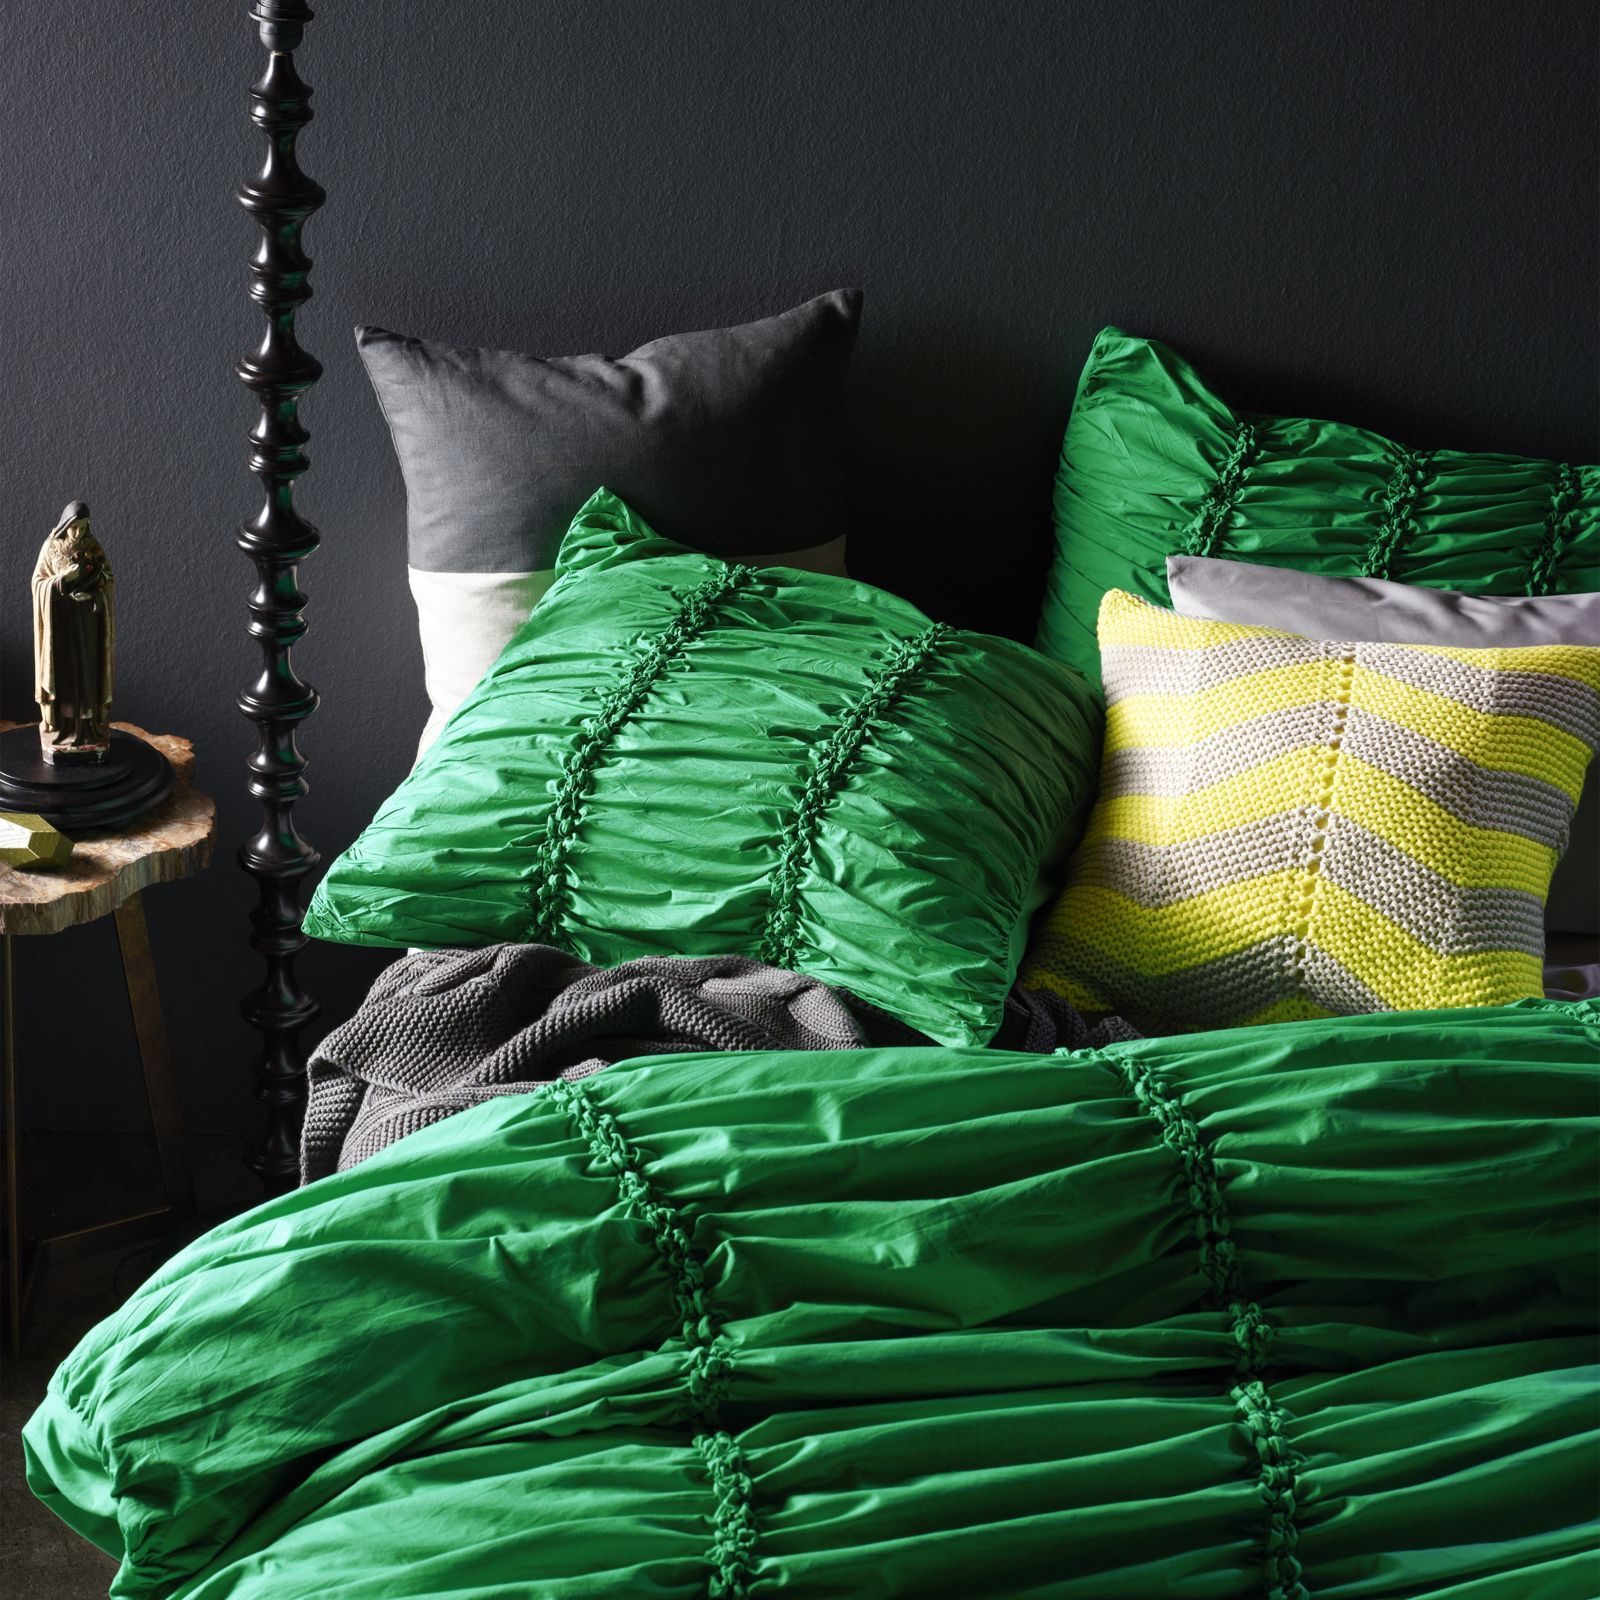 Aura by Tracie Ellis Gathered Quilt Cover | Hues of Emerald ... : gathered quilt - Adamdwight.com